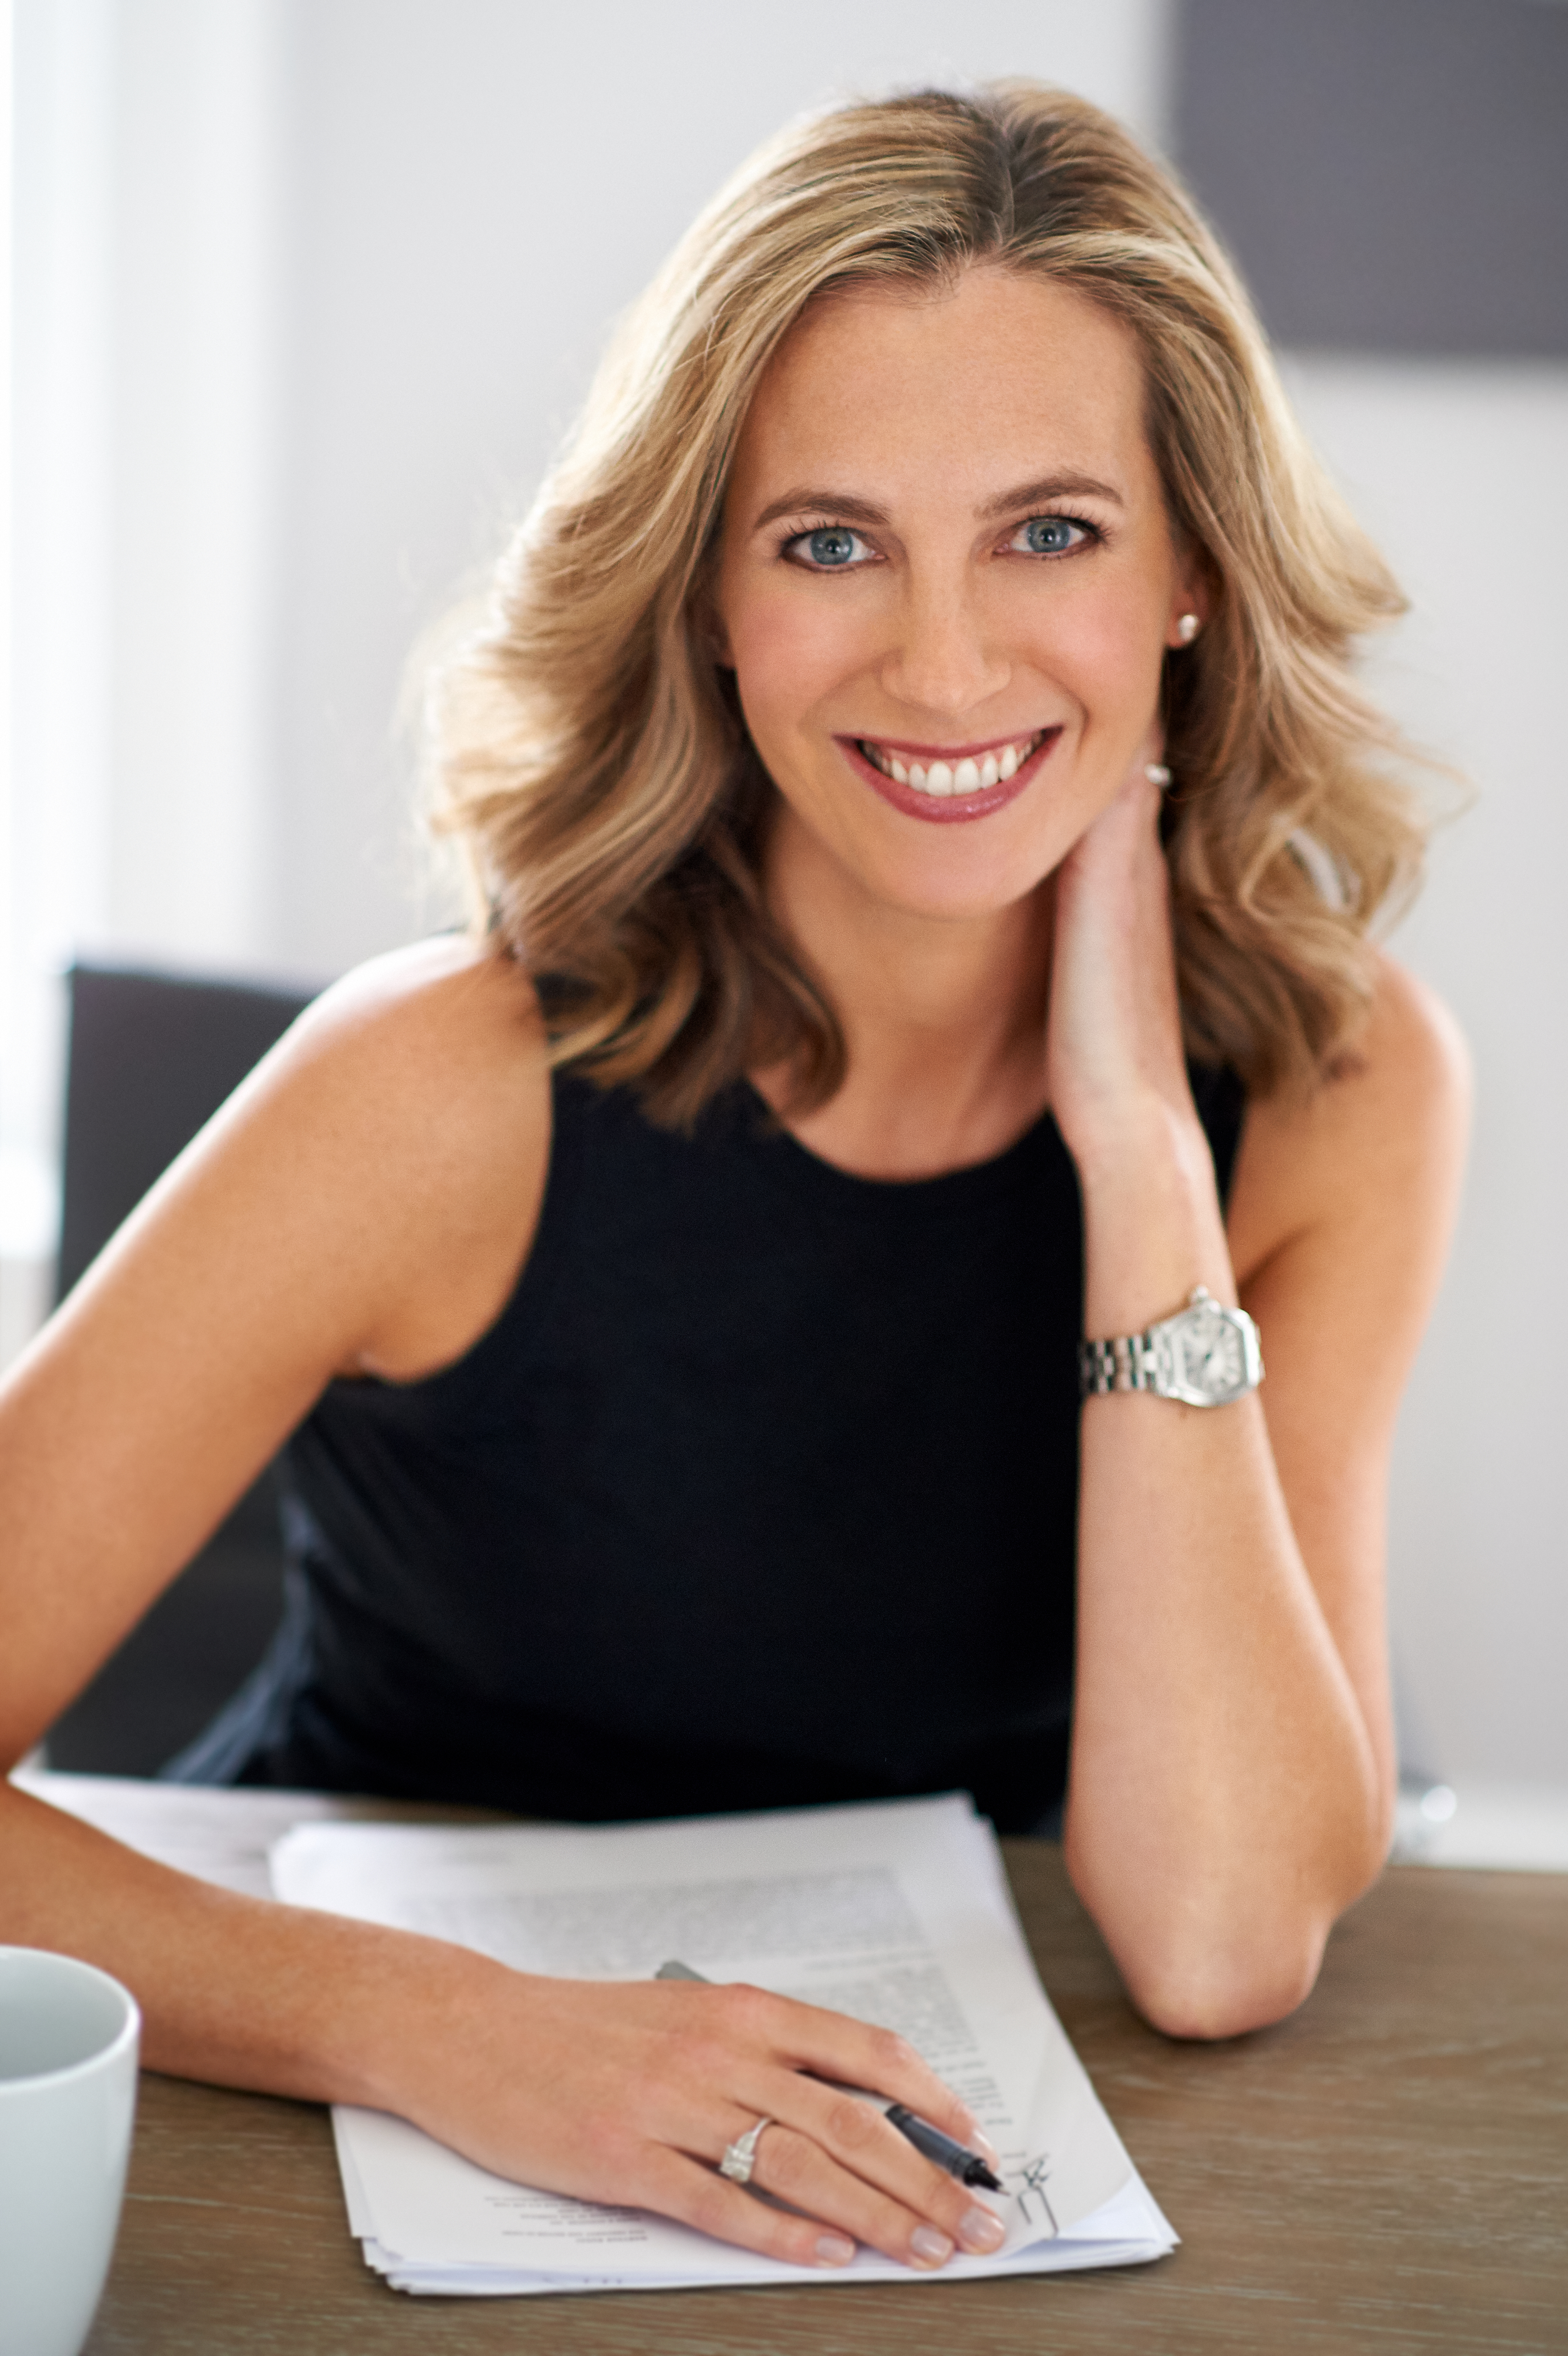 Lauren Weisberger, author of When Life Gives You Lululemons (Image: Mike Cohen)